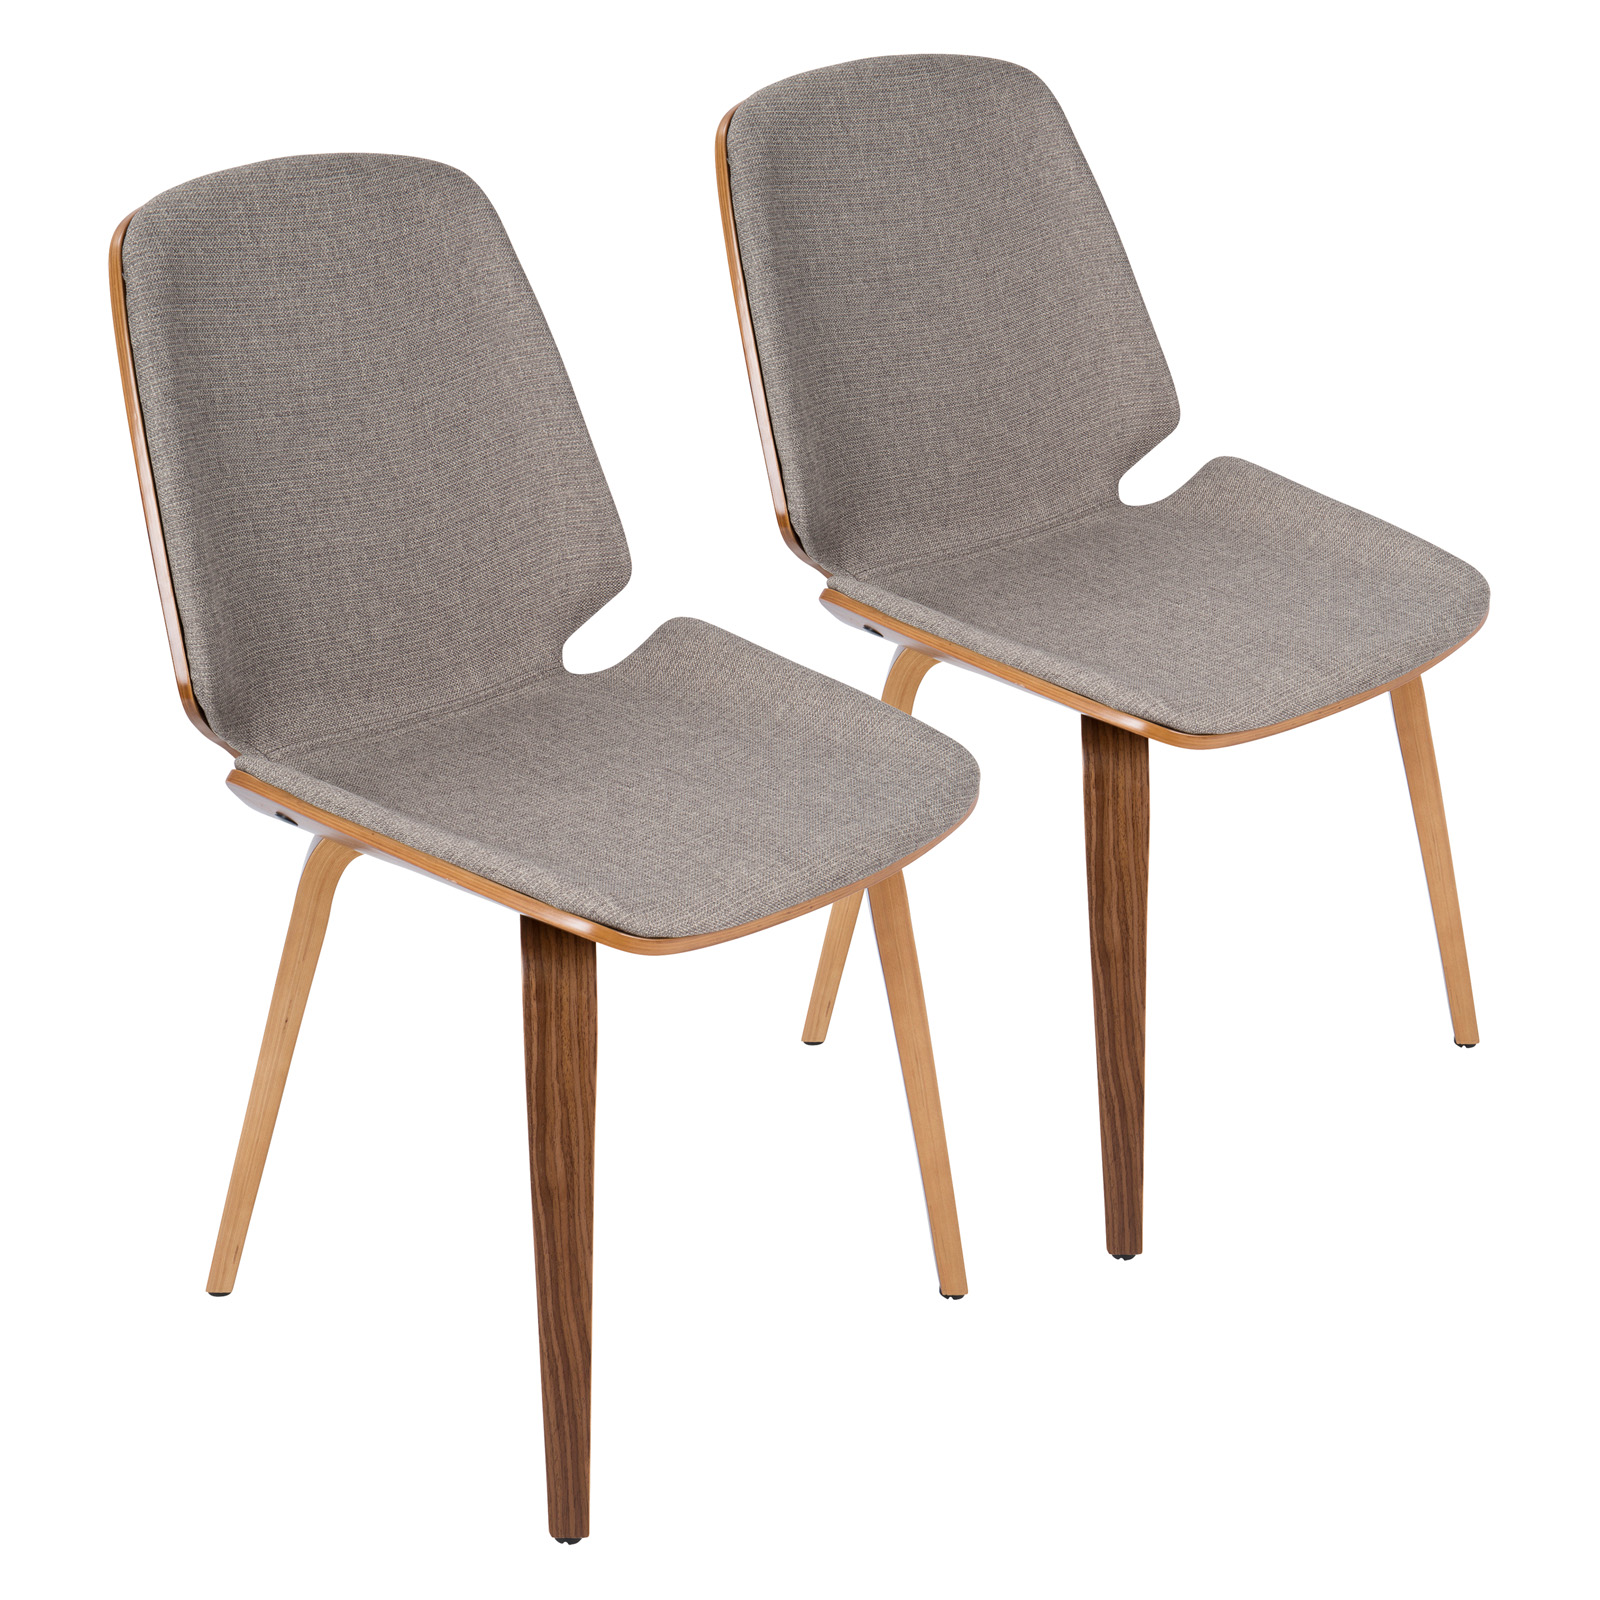 Lumisource Serena Mid Century Modern Dining Chairs   Set Of 2